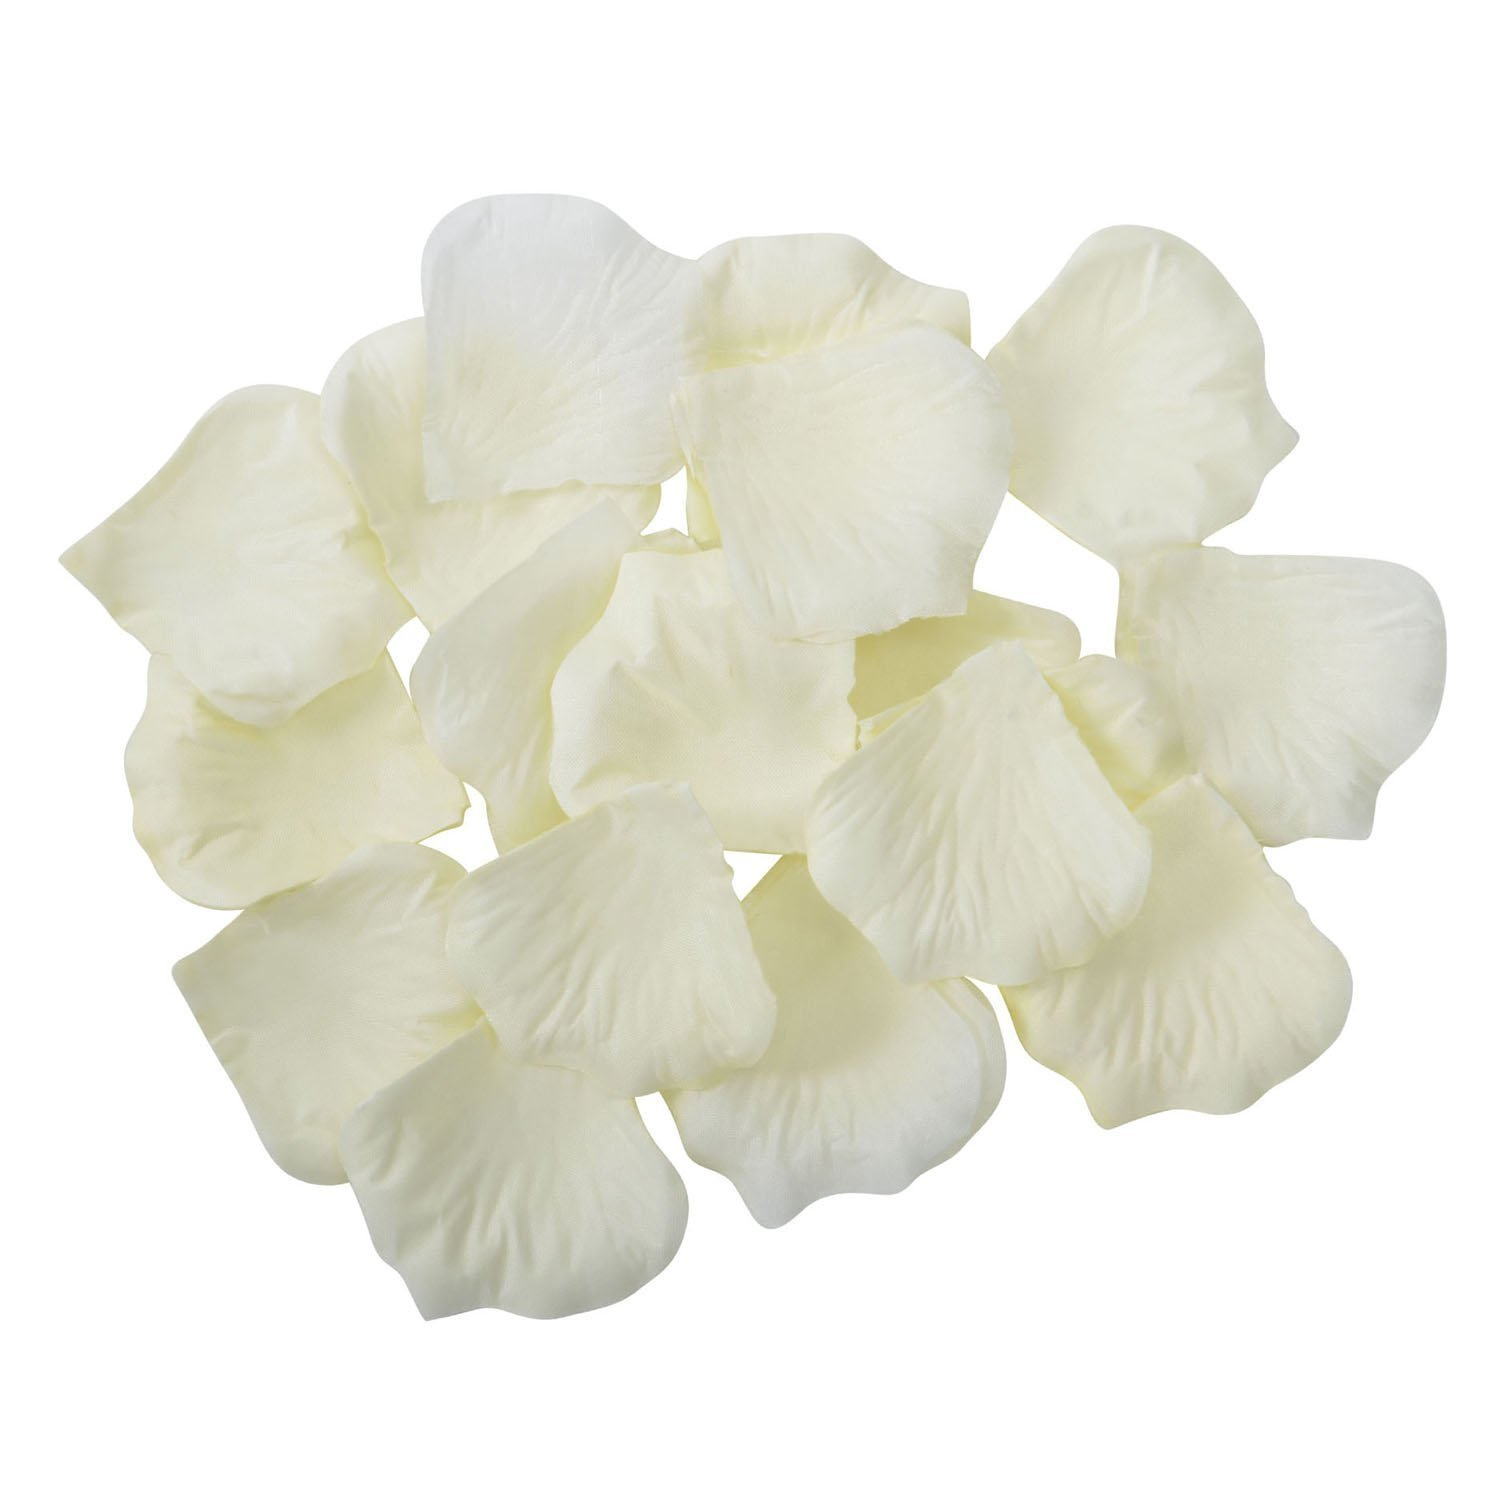 Amazon jassins 4000 silk rose artificial petals supplies amazon jassins 4000 silk rose artificial petals supplies wedding decorations ivory home kitchen izmirmasajfo